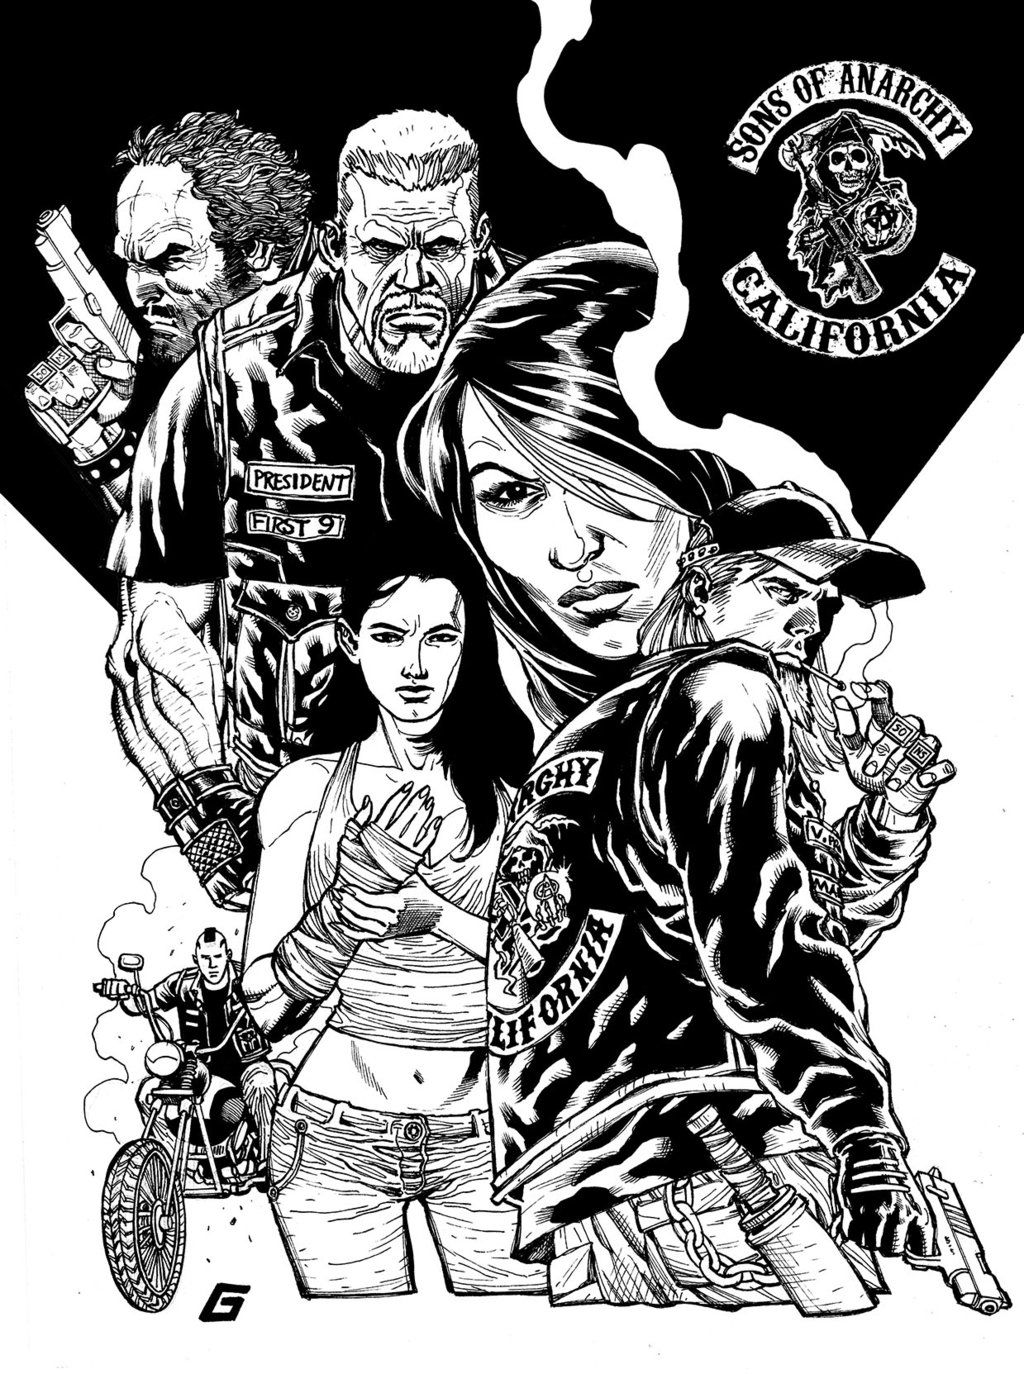 Sons Of Anarchy Goldman Style By Goldmanpenciler On Deviantart Sons Of Anarchy Sons Of Anarchy Mc Anarchy